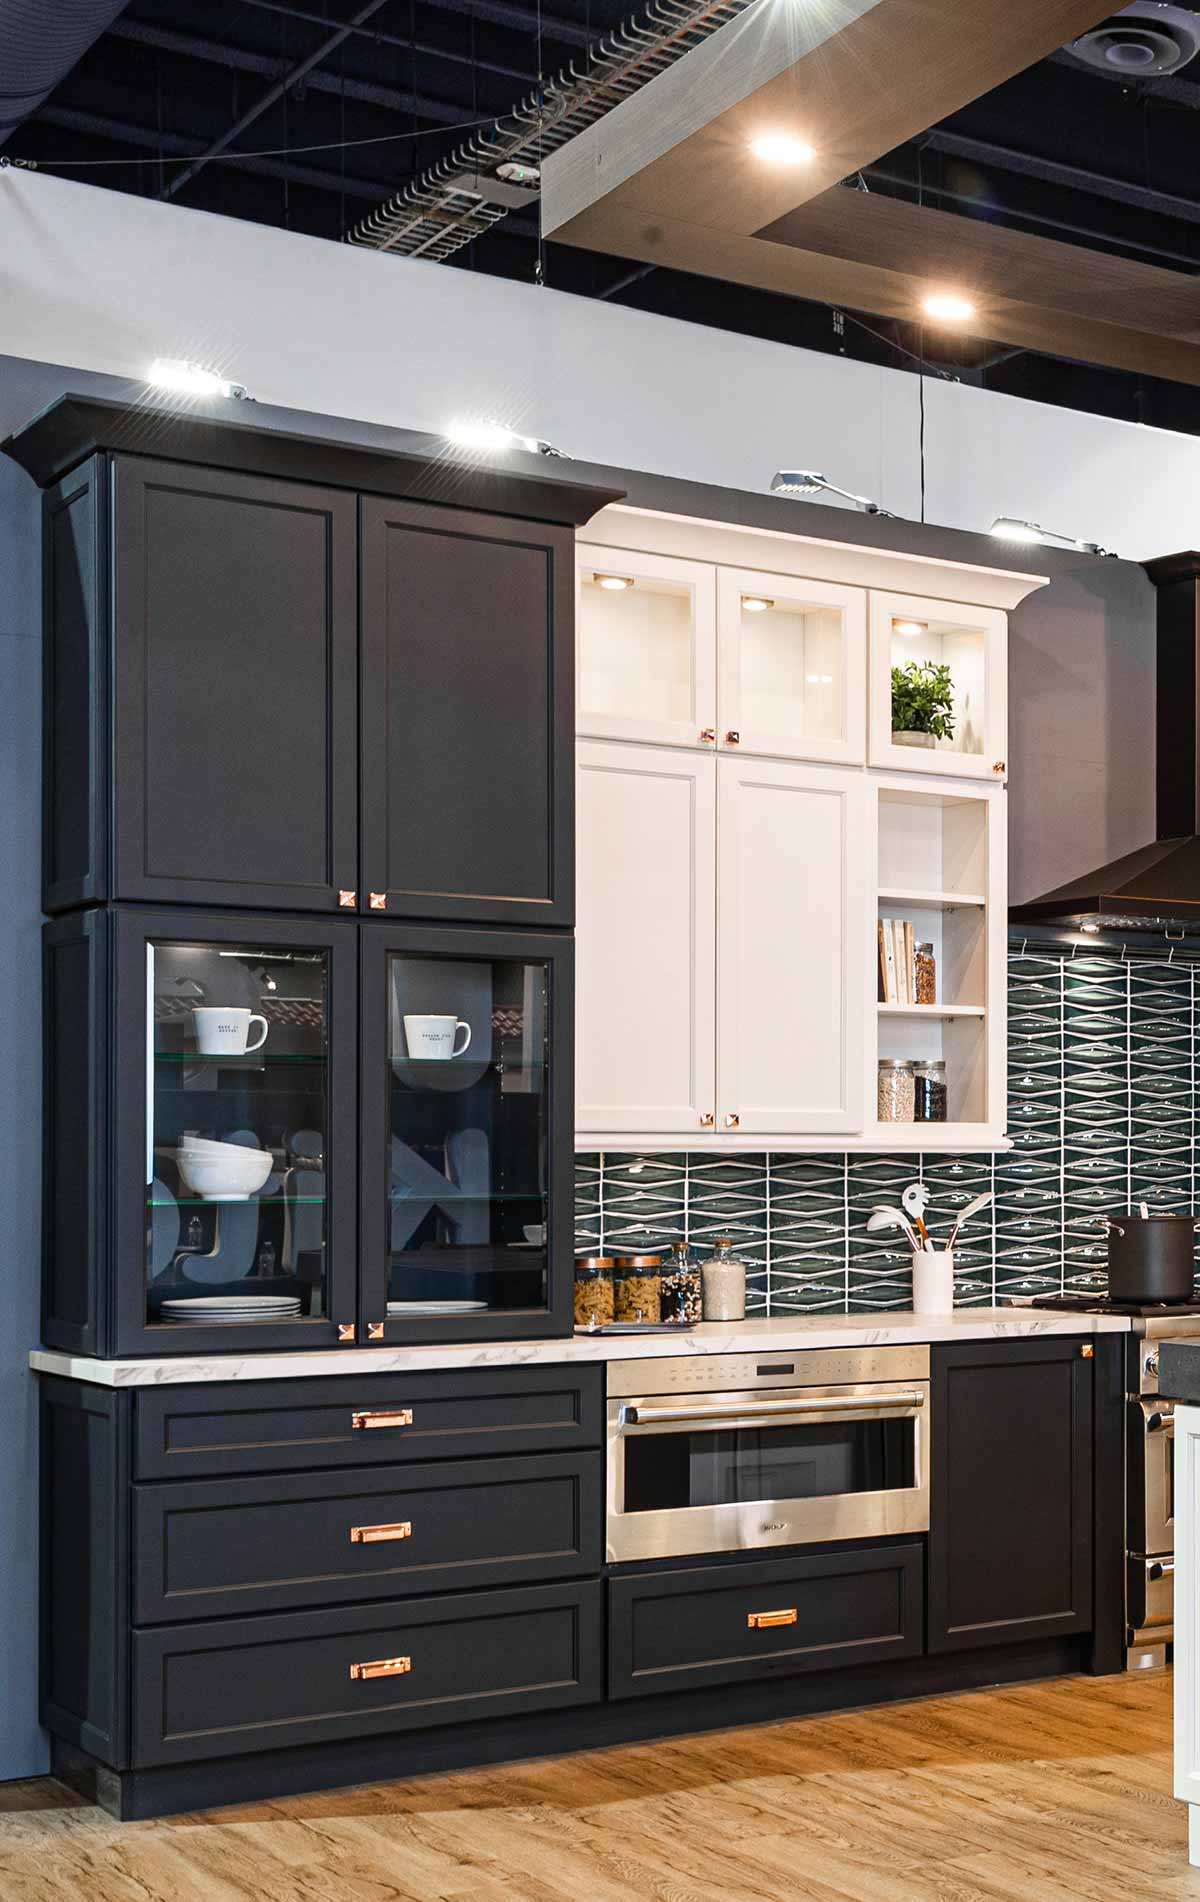 J&K Cabinets E2 transitional line of cabinets displayed in a kitchen